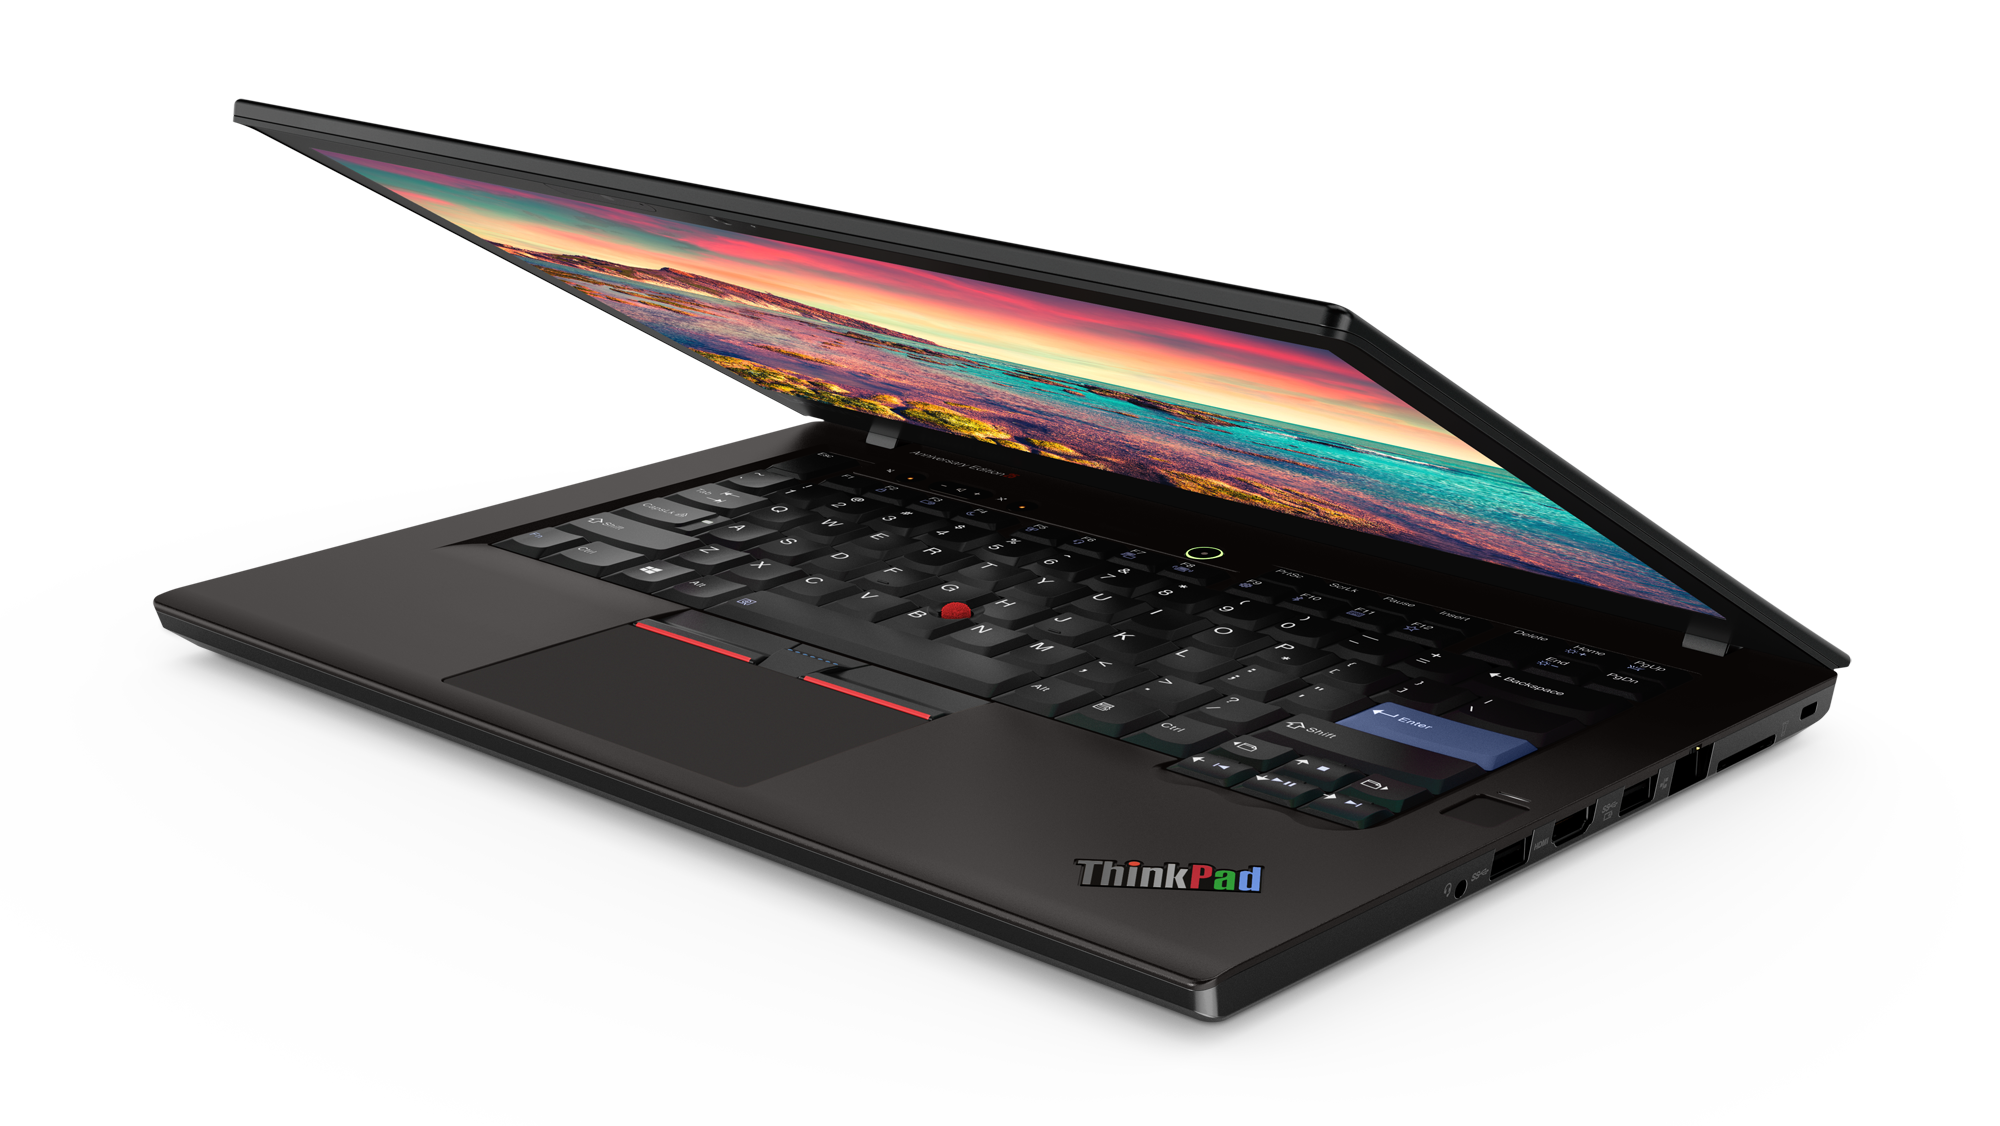 Lenovo celebrates 25 years of ThinkPad with limited edition laptop